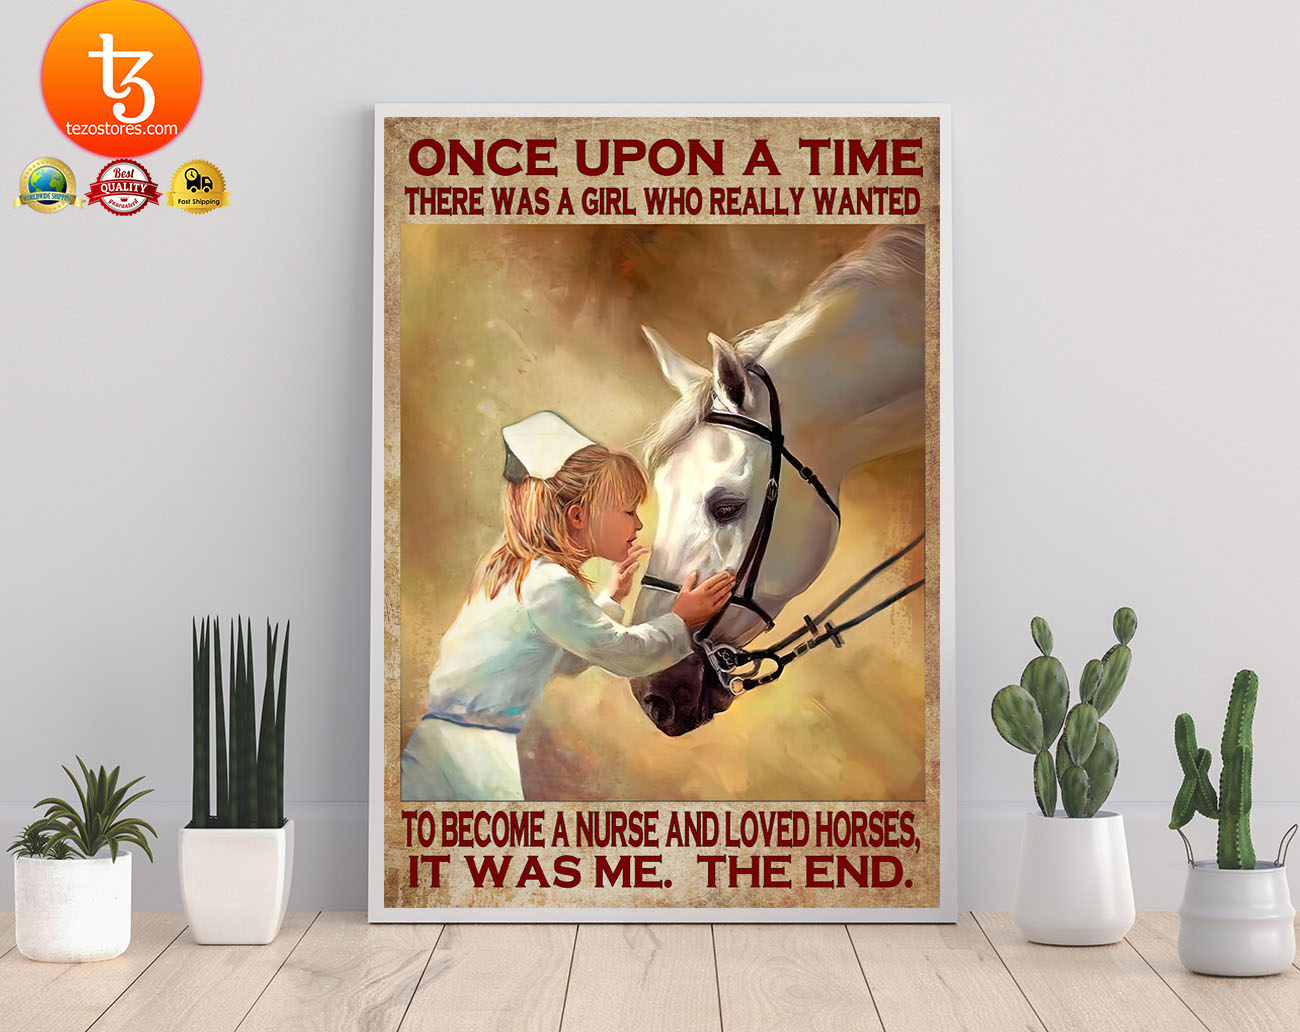 Once upon a time there was a girl who really wanted to become a nurse and loved horses poster 21